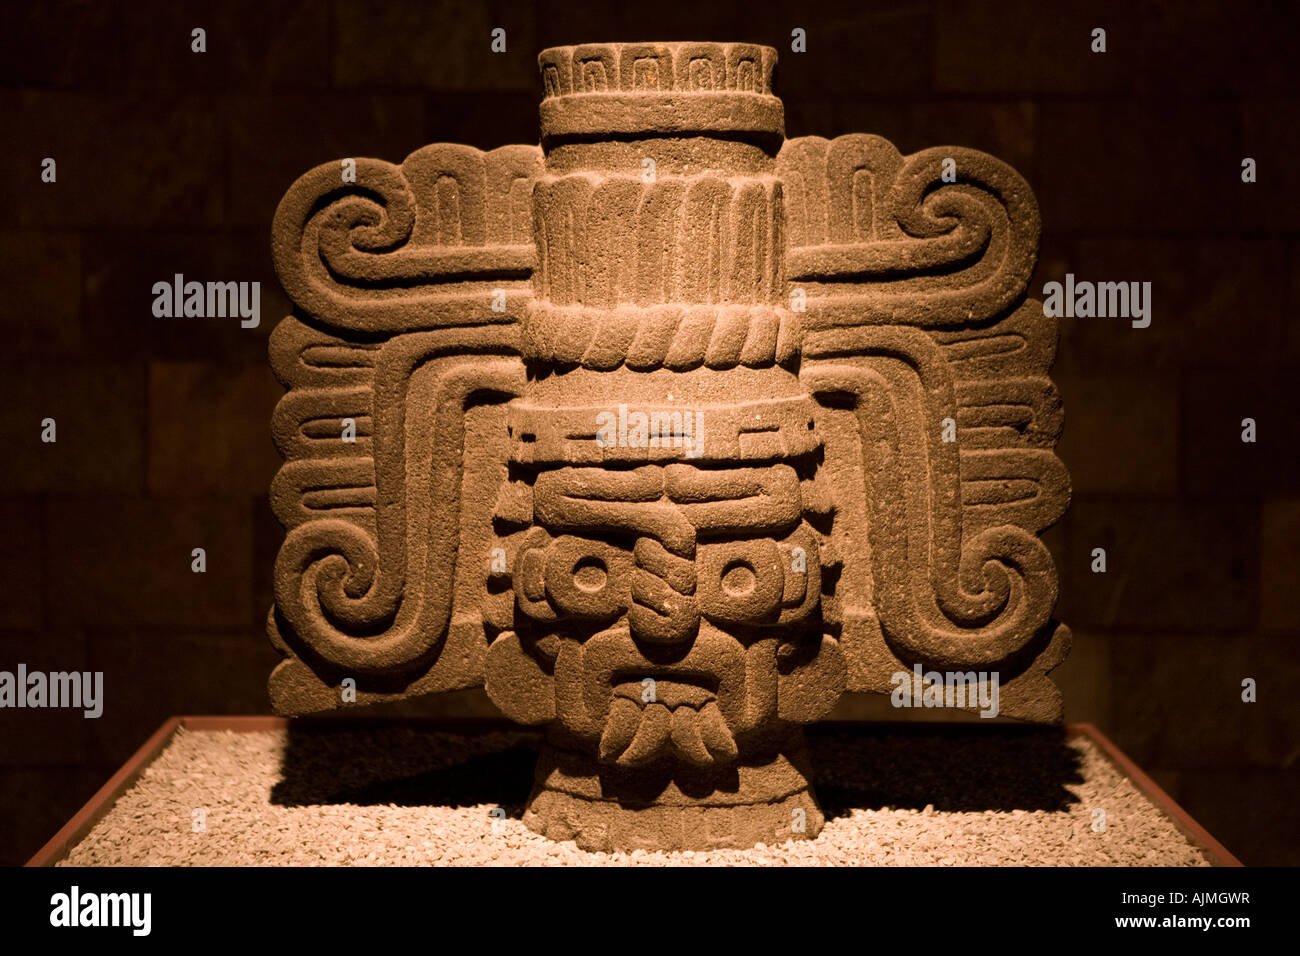 Atzec statues and totems Museum of Anthropology of Mexico City Mexico - Stock Image